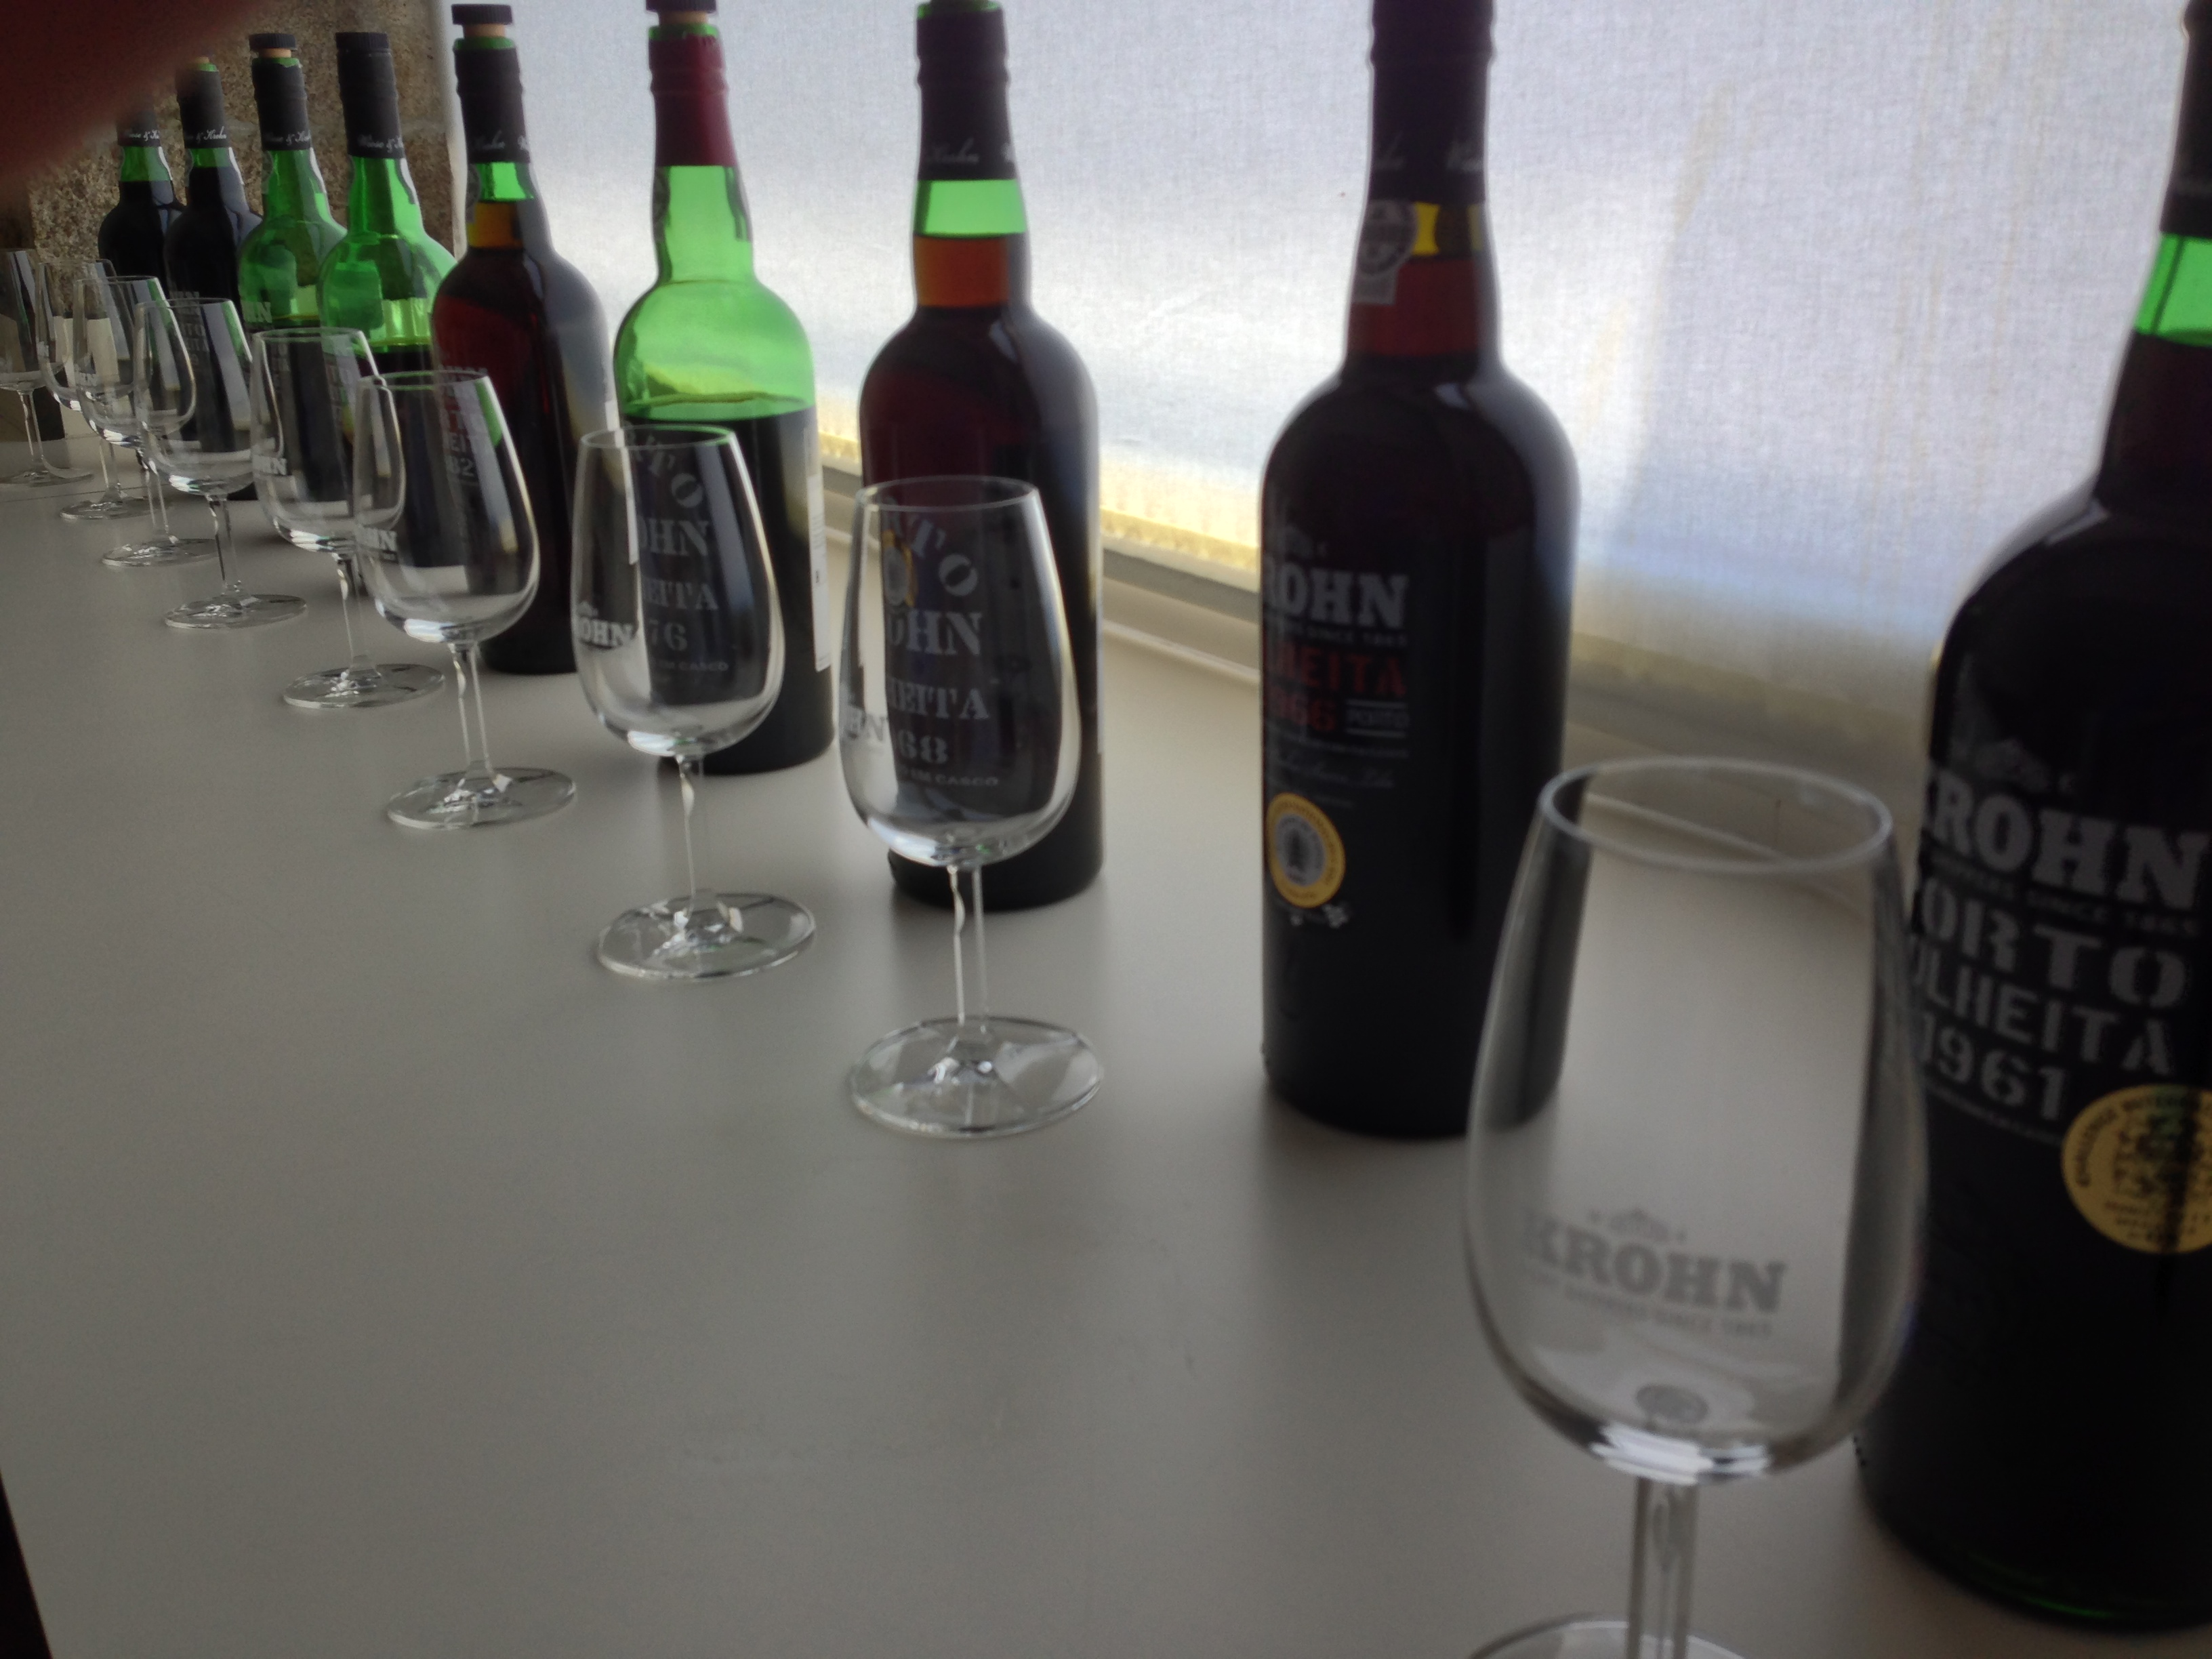 Tasting in the lab: pretty usual in Vila Nova de Gaia.